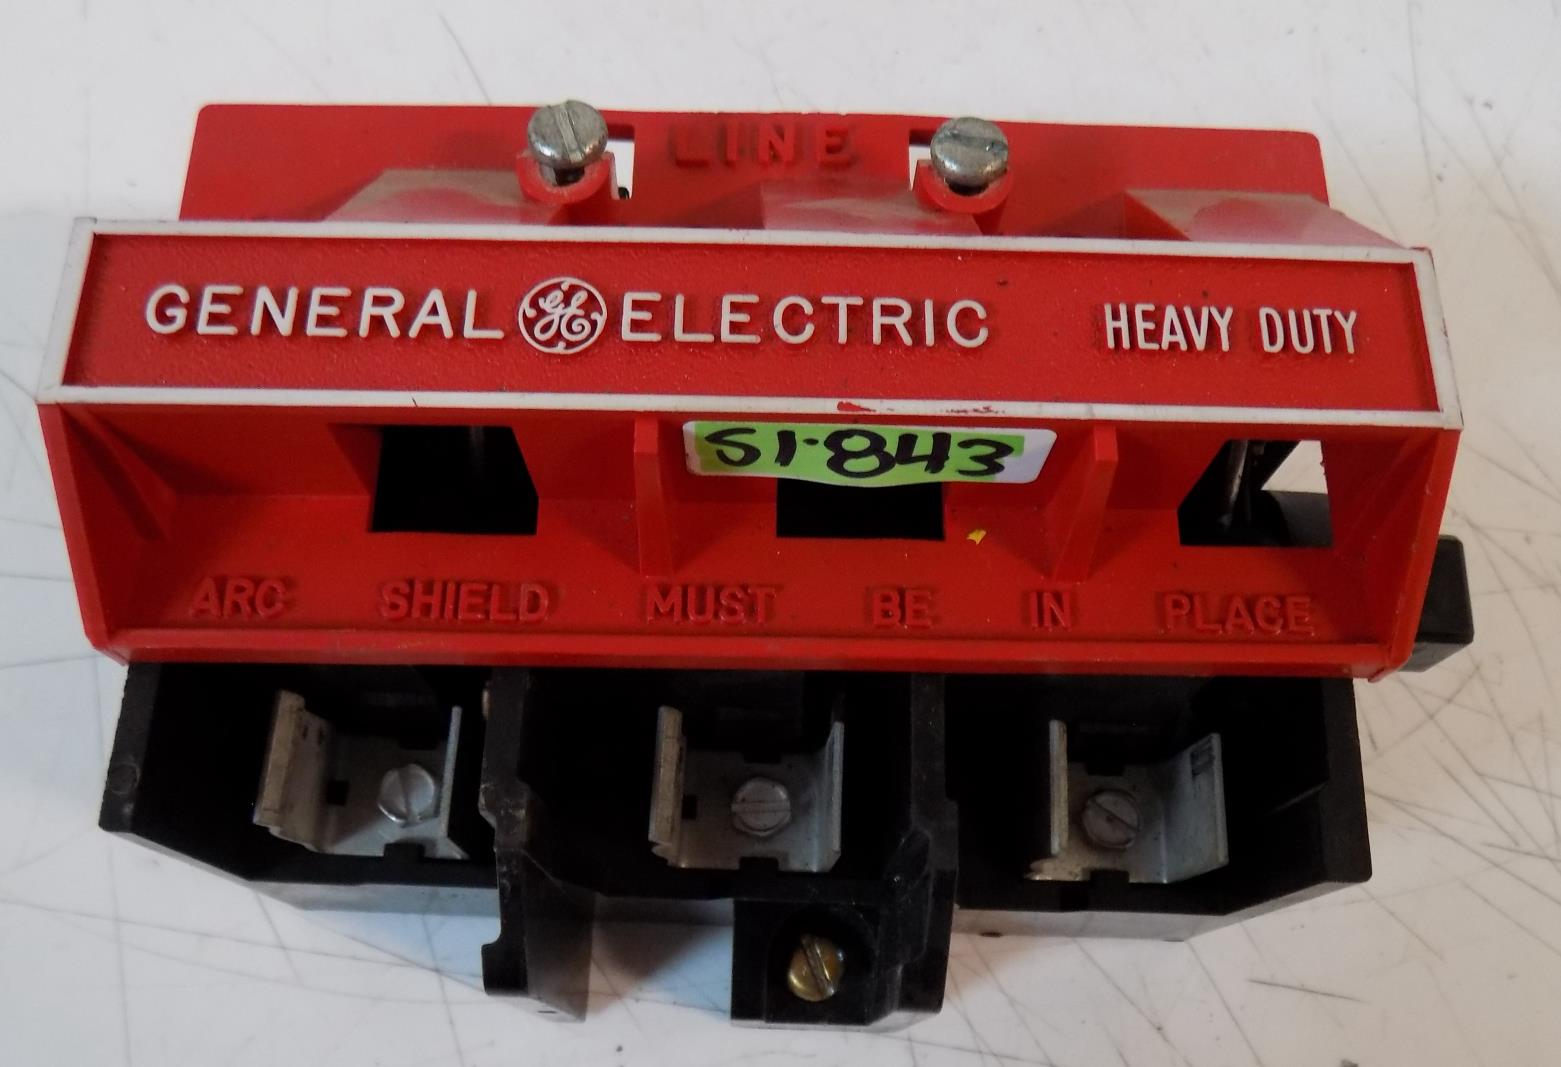 General Electric Heavy Duty Fuse Holder